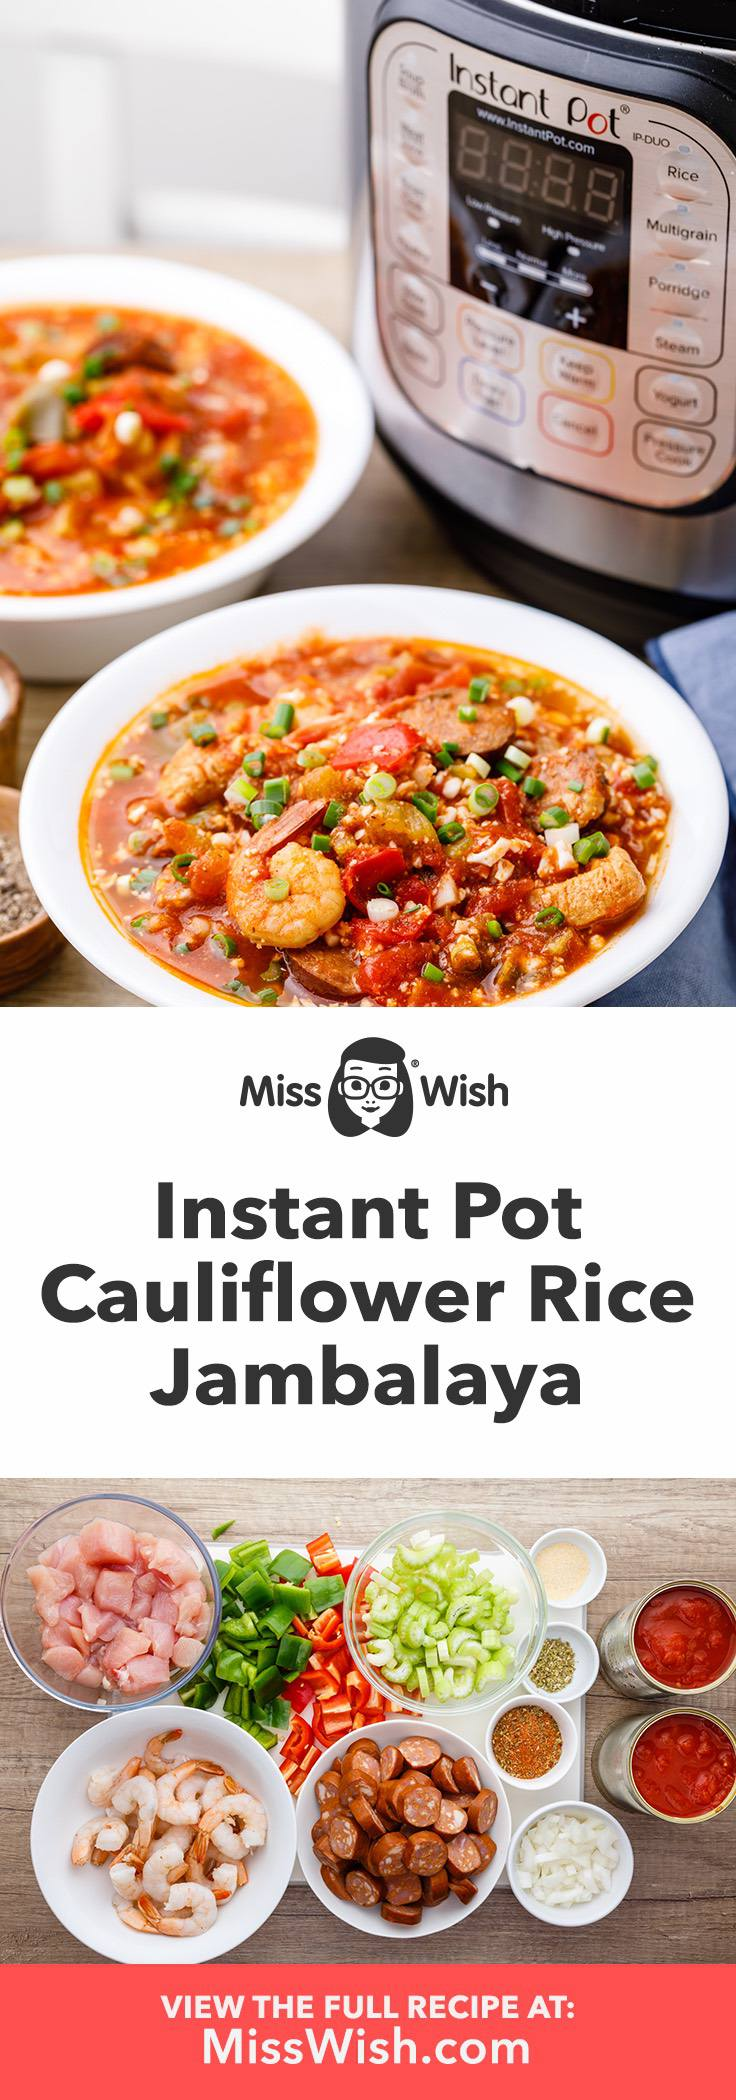 Healthy Instant Pot Jambalaya with Cauliflower Rice